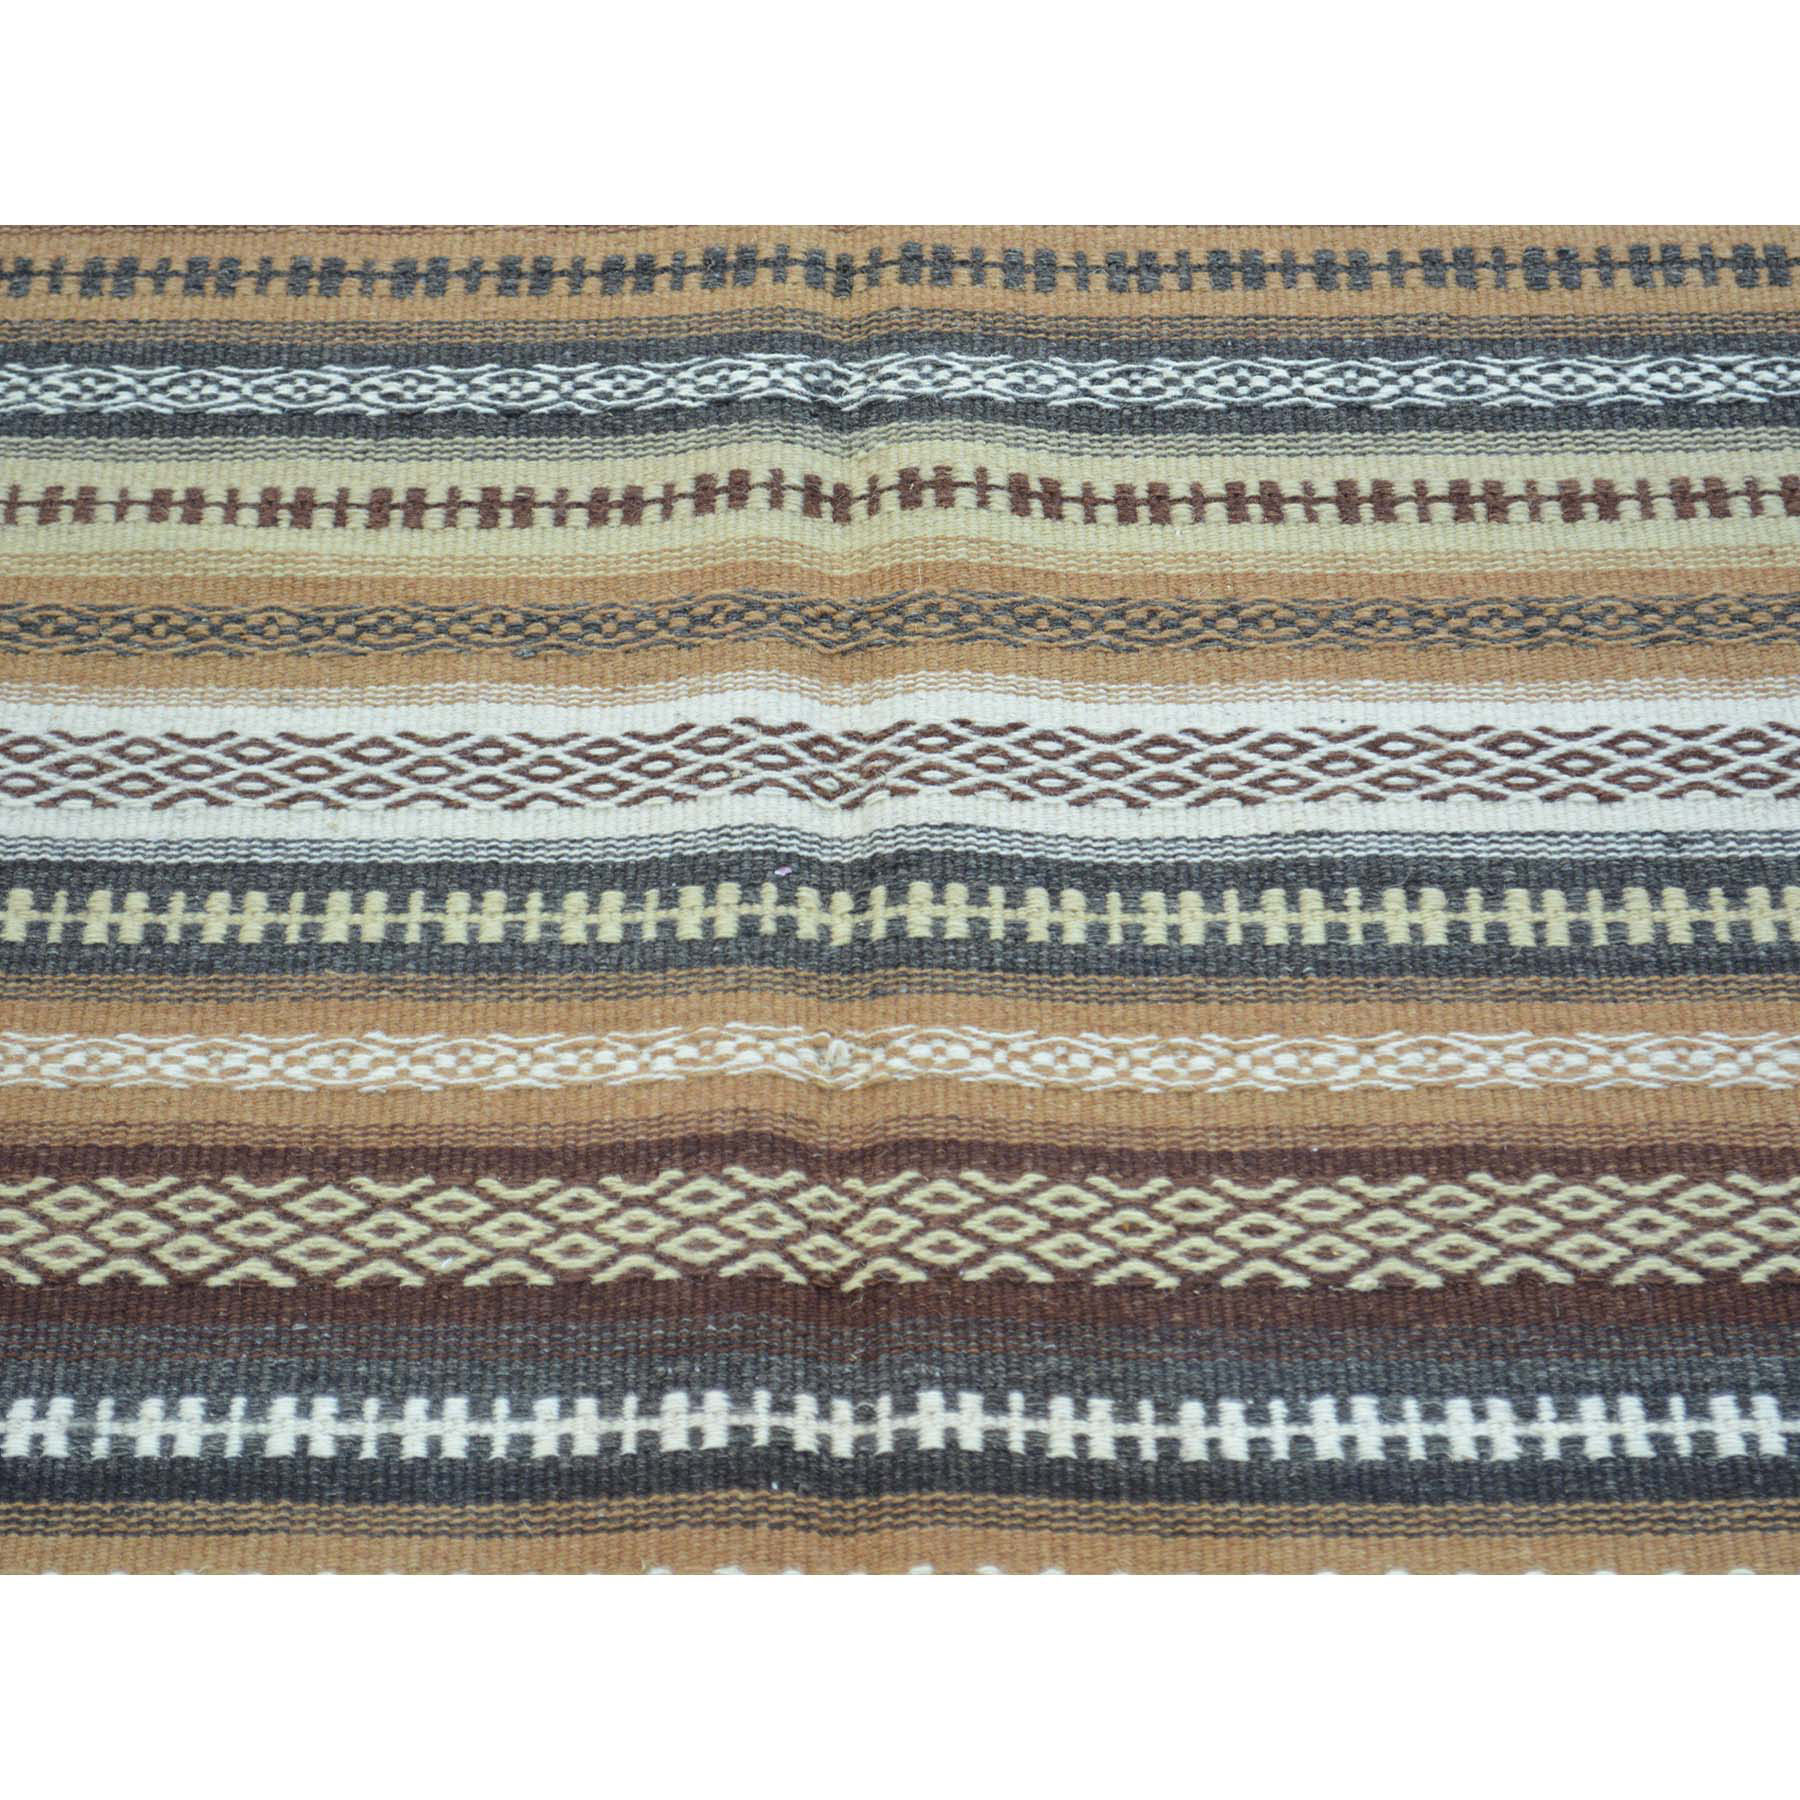 3-10 x6- Reversible Flat Weave Pure Wool Colorful Durie Kilim Rug